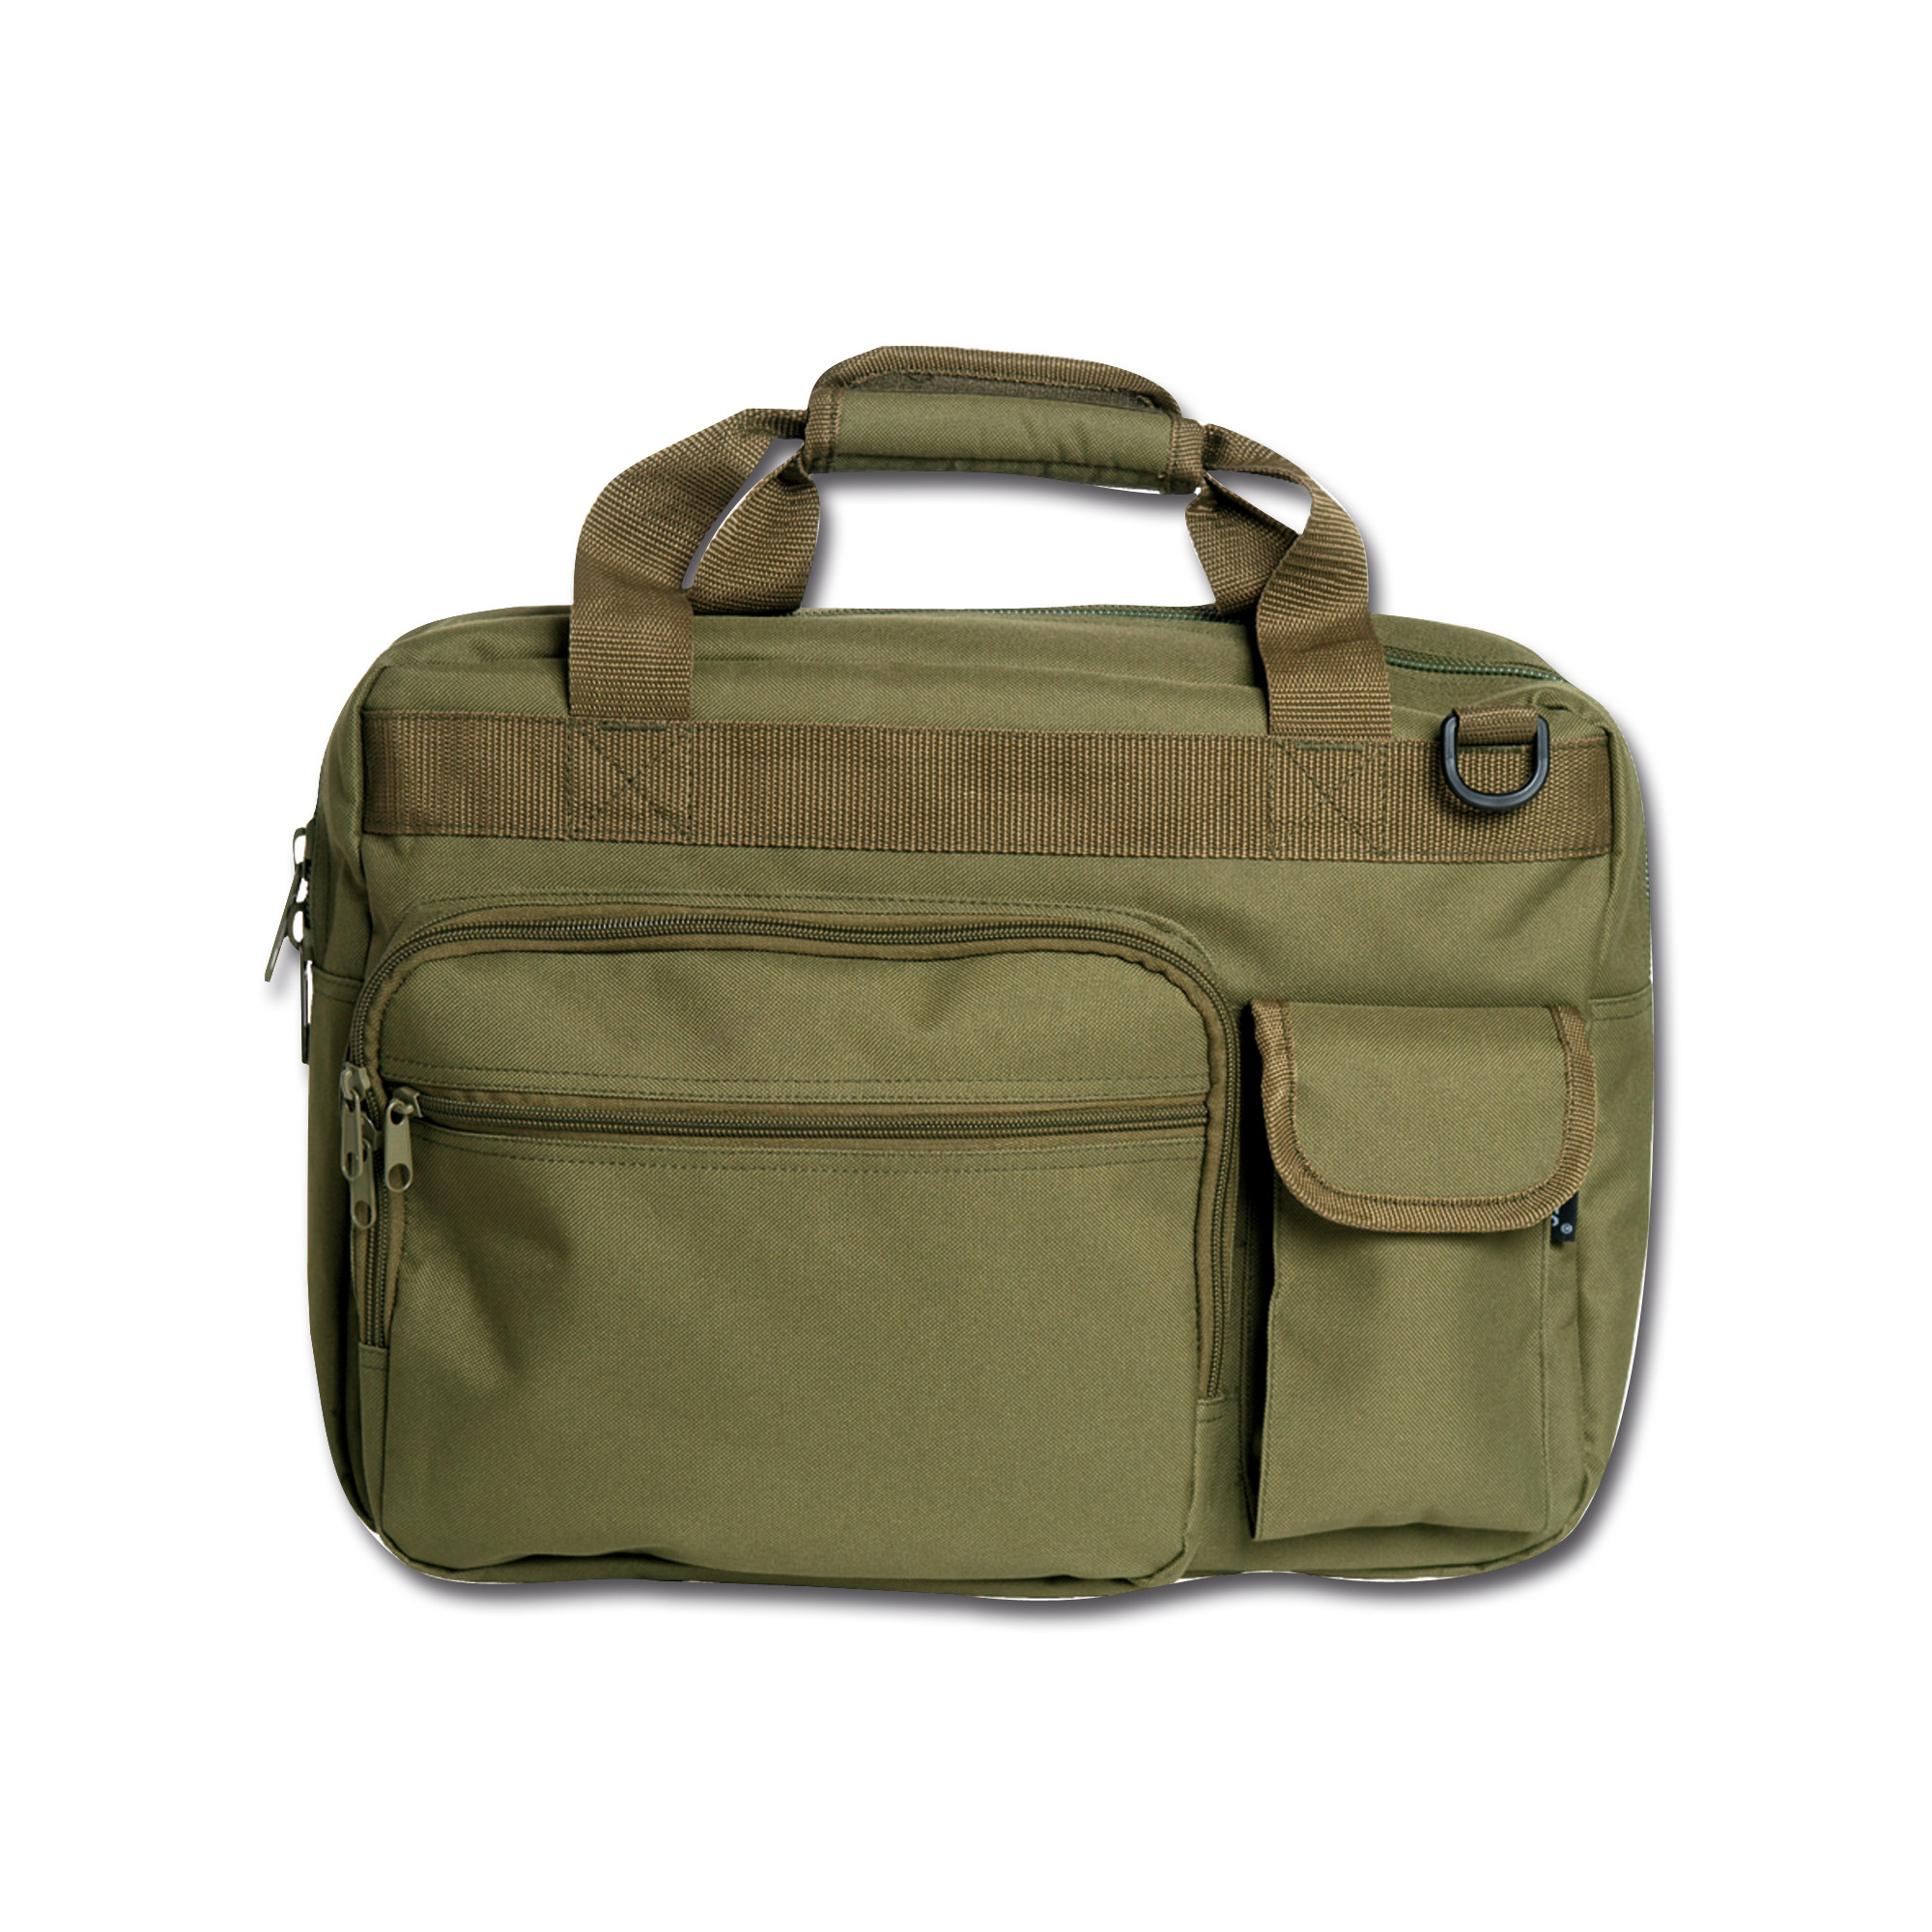 Travel-Office olive